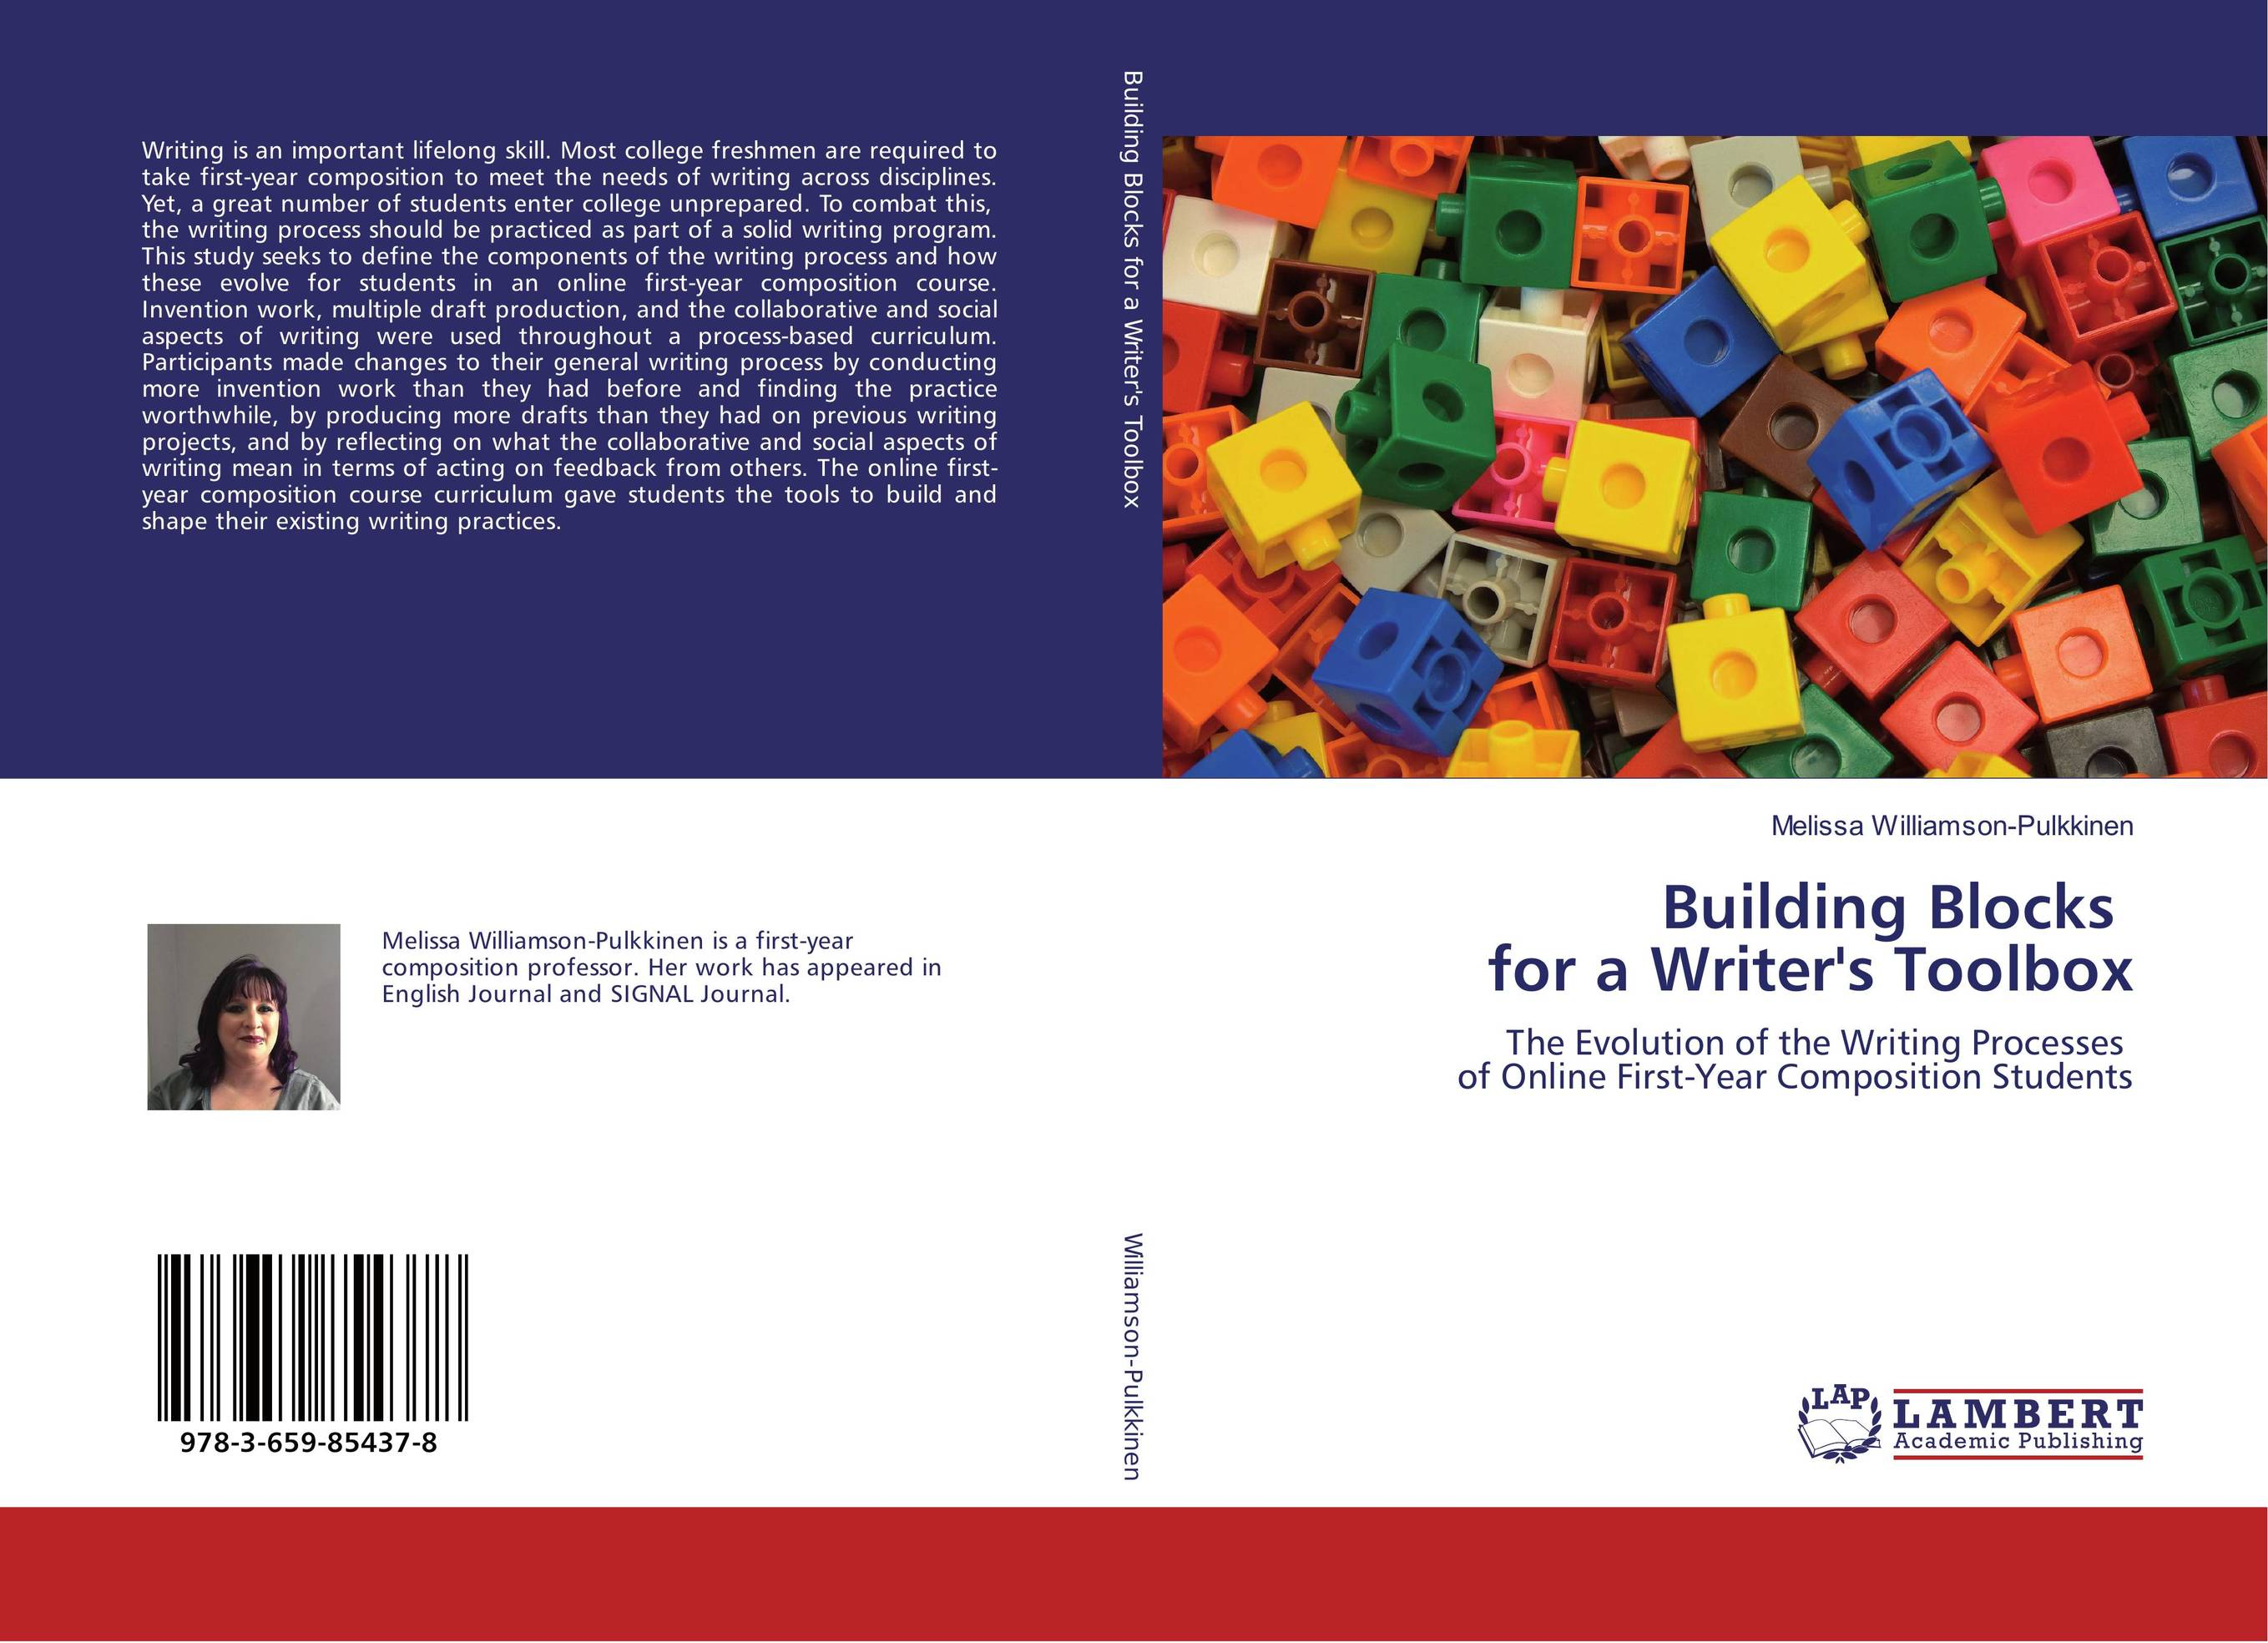 Building Blocks for a Writer's Toolbox